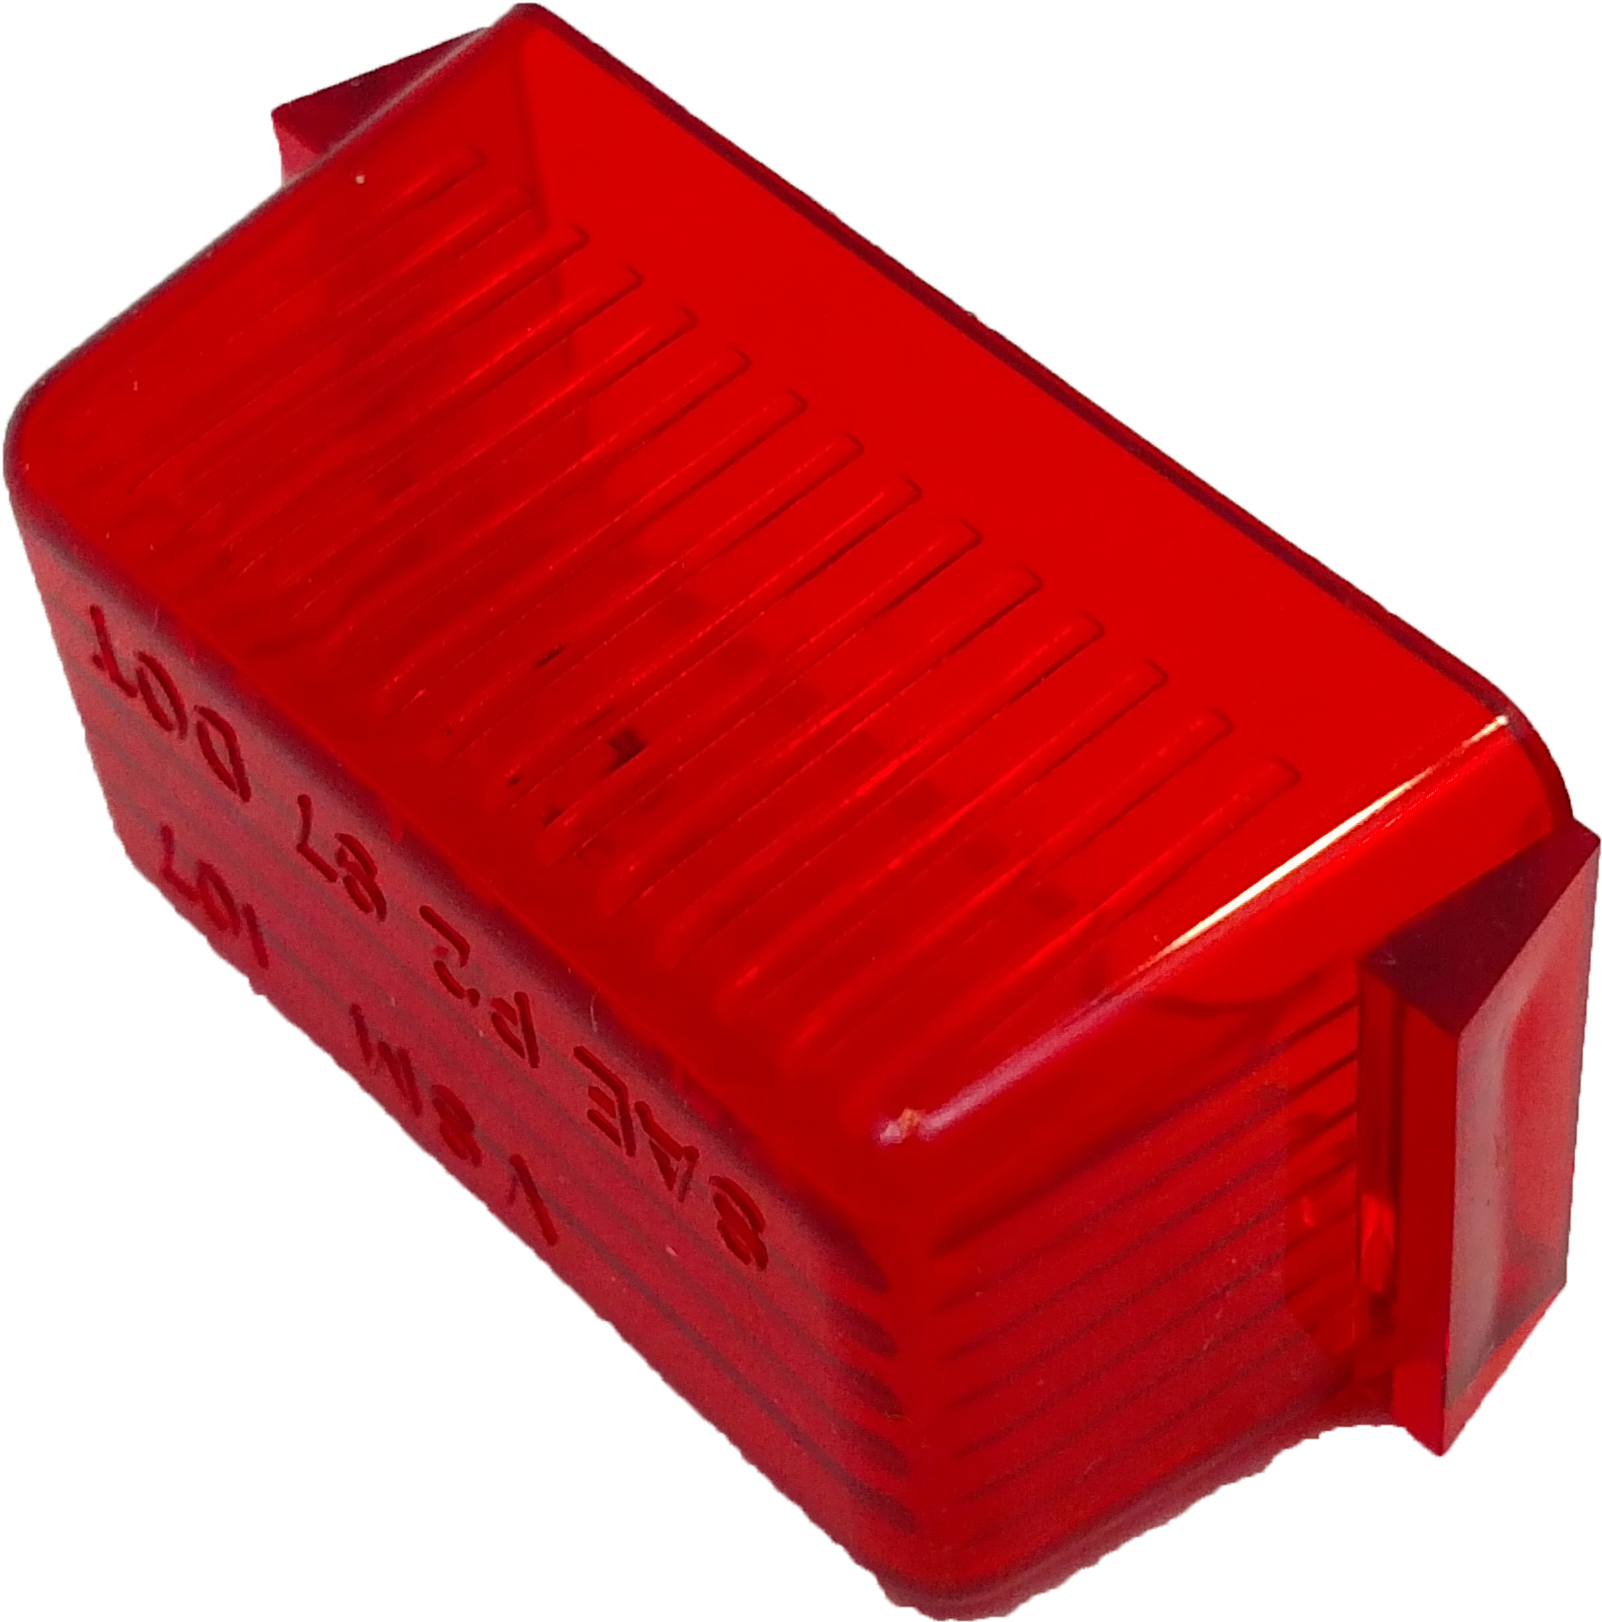 LENS RED MINI RECTANGULAR CARDED